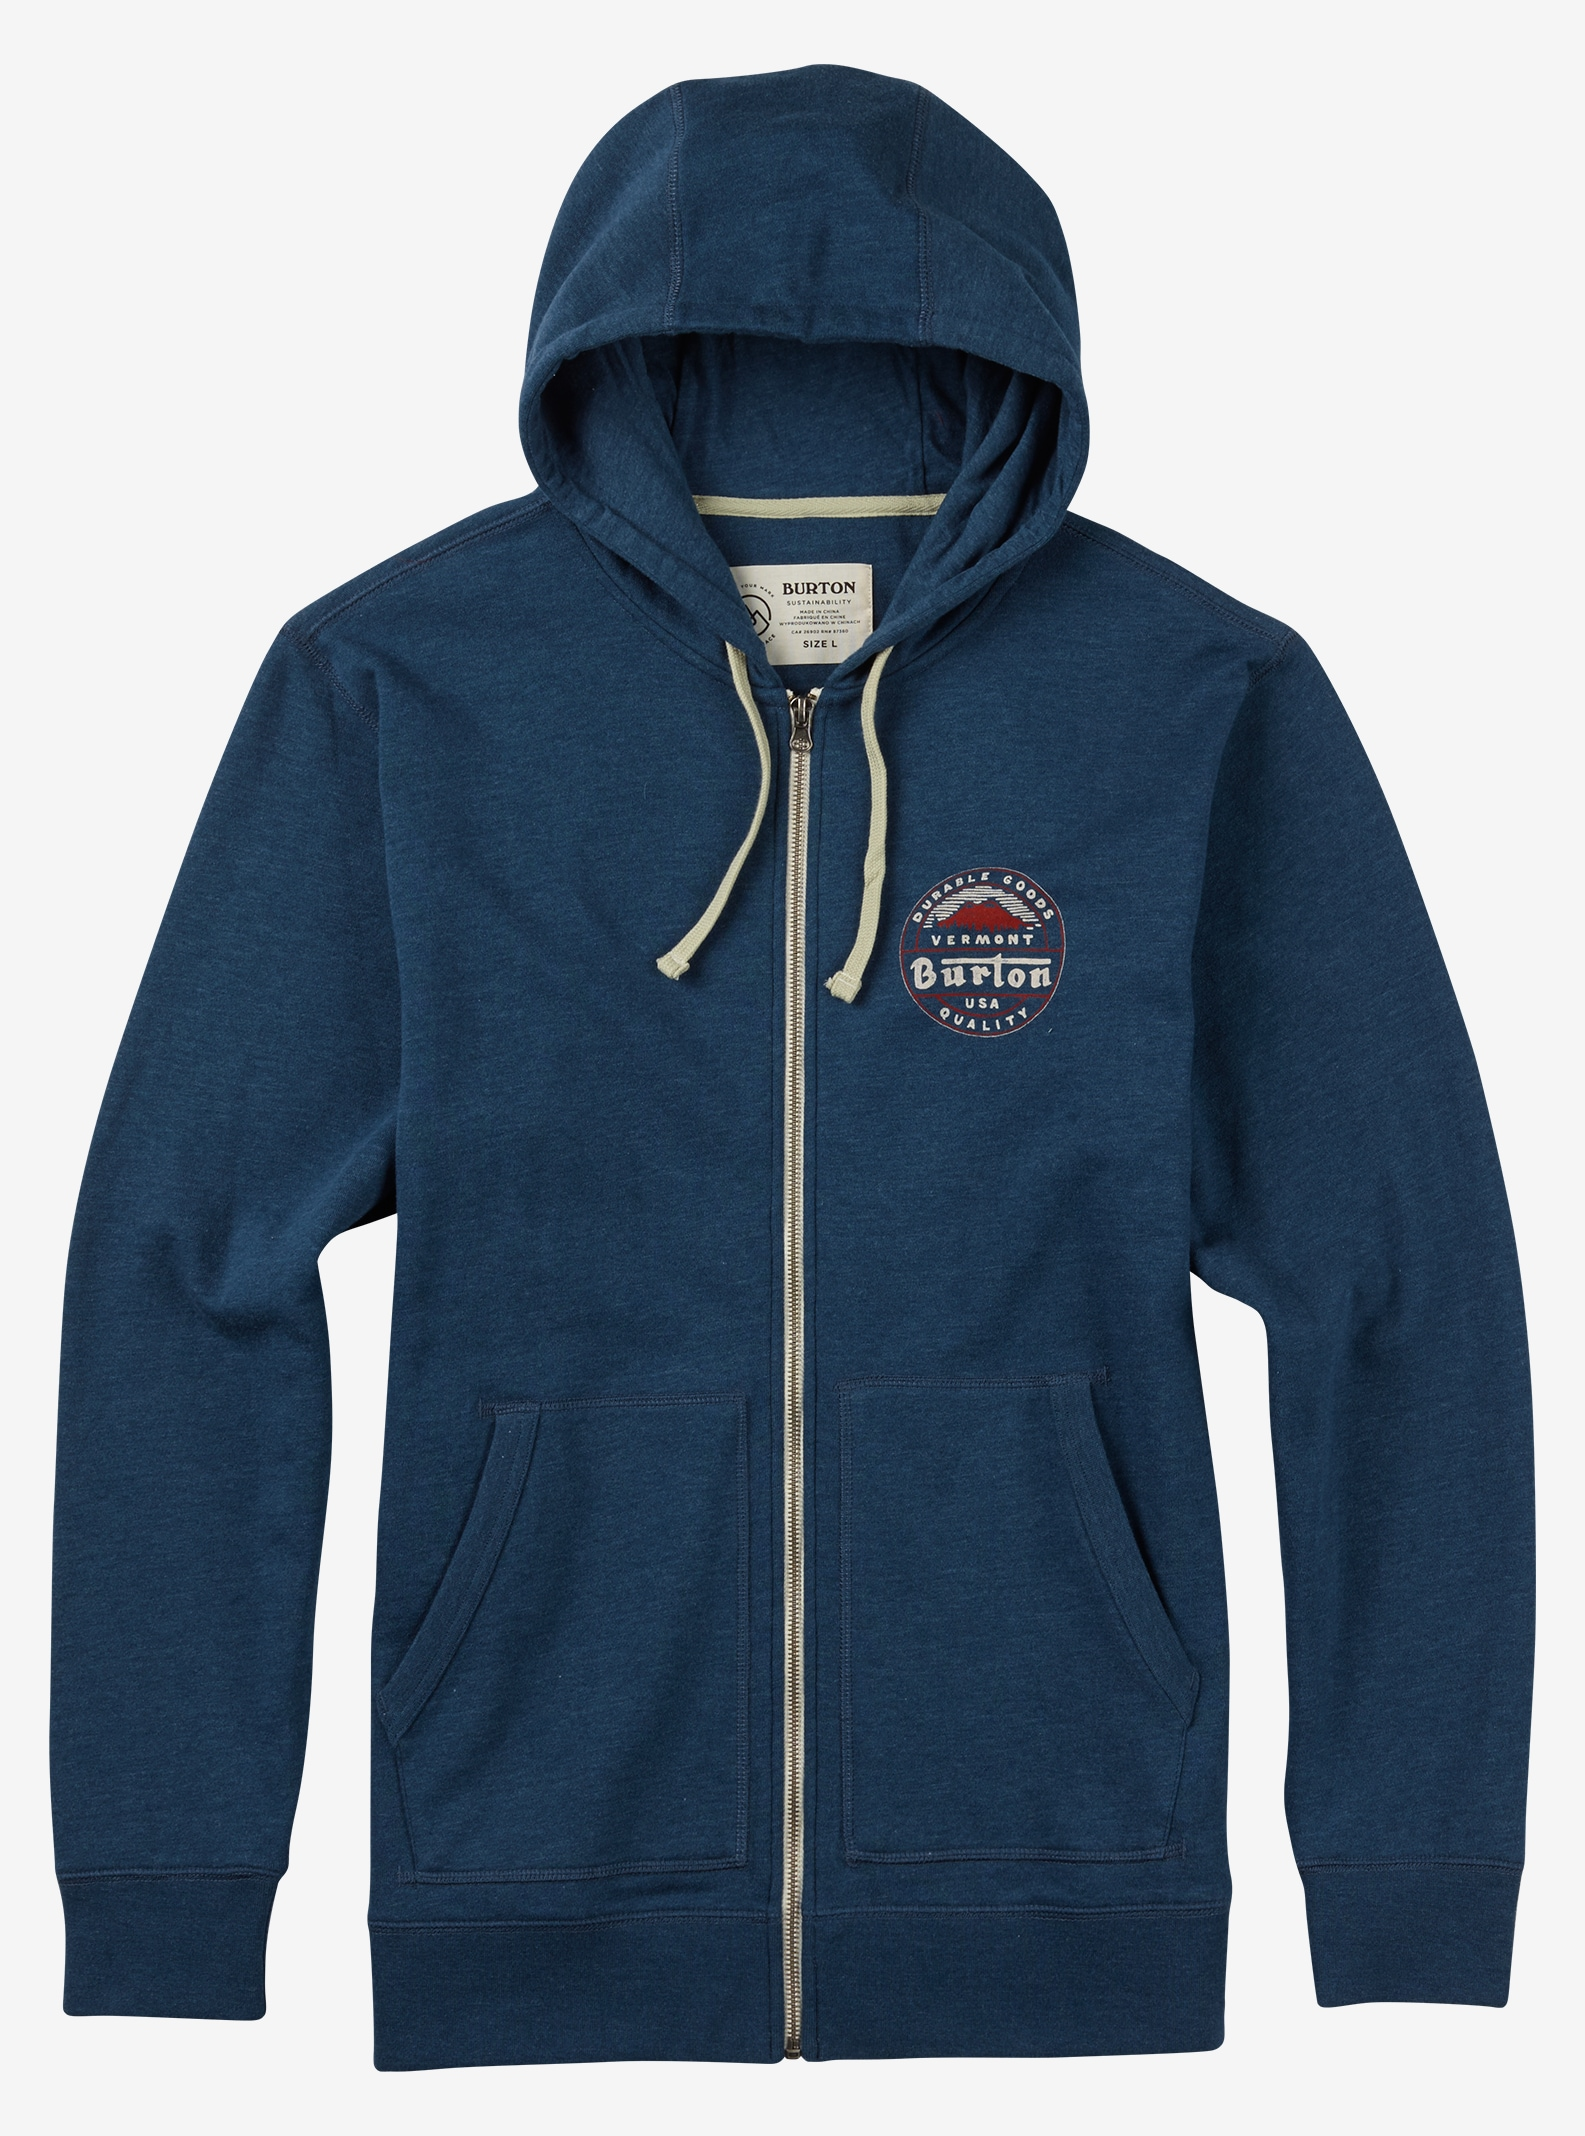 Burton Long Trail Full-Zip Hoodie shown in Indigo Heather